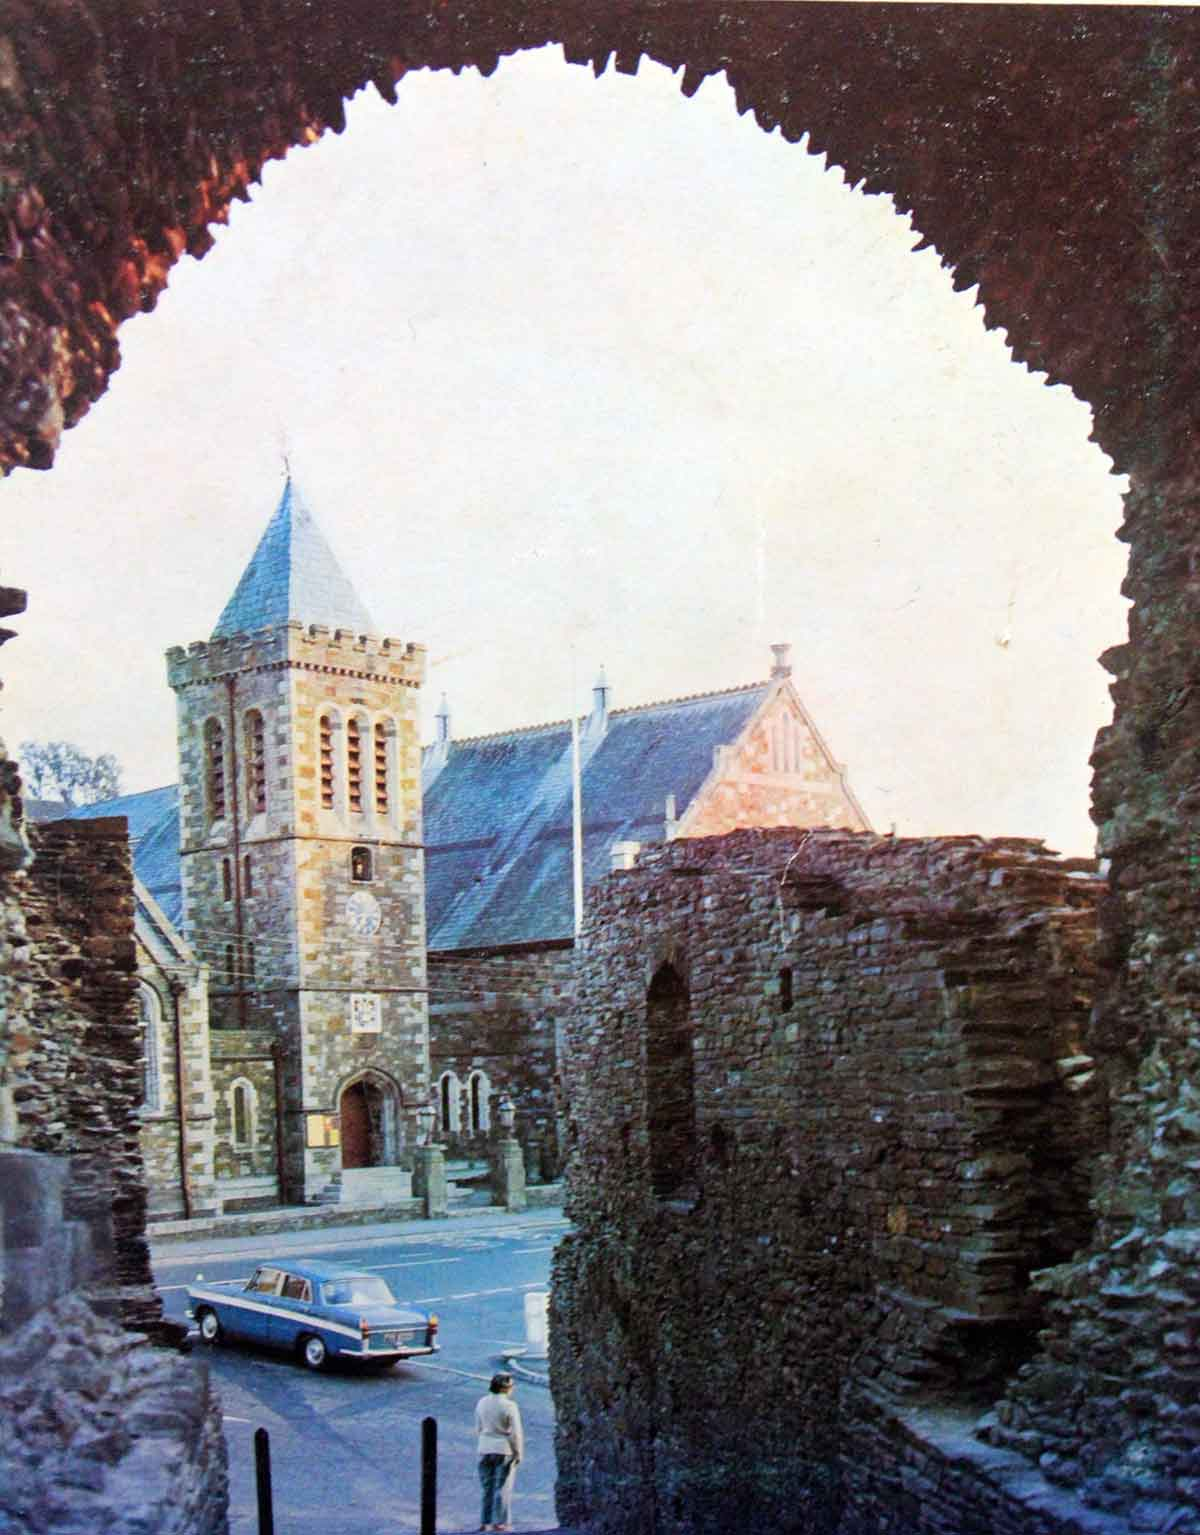 guildhall-from-the-castle-1960s-colour